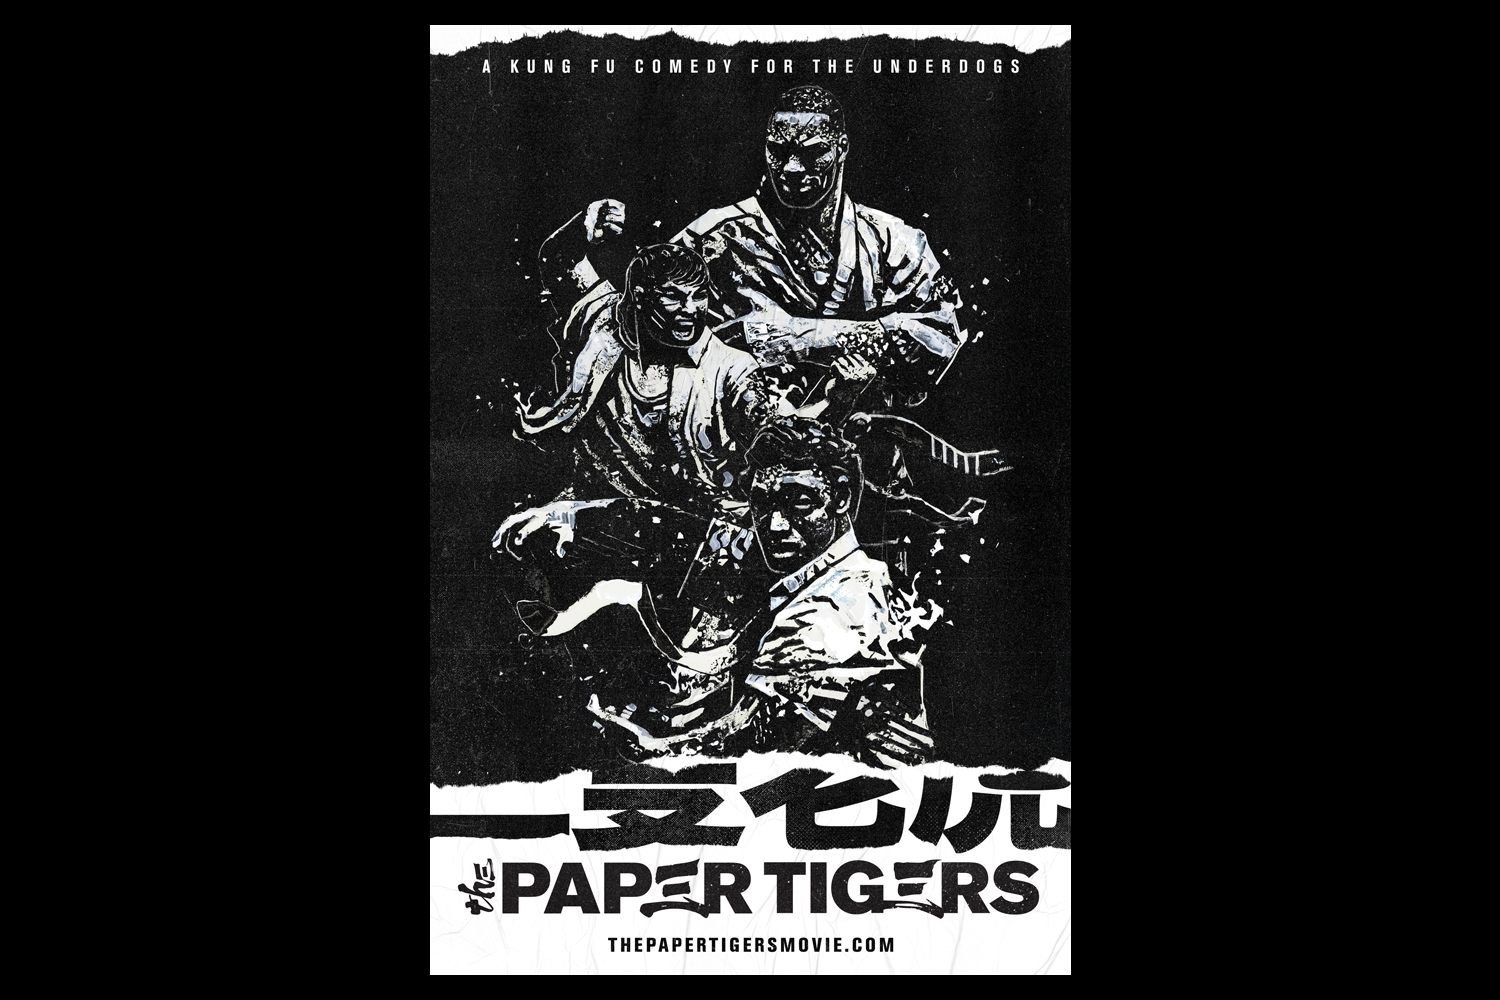 Yuji is a producer for The Paper Tigers Movie (Image: The Paper Tigers)